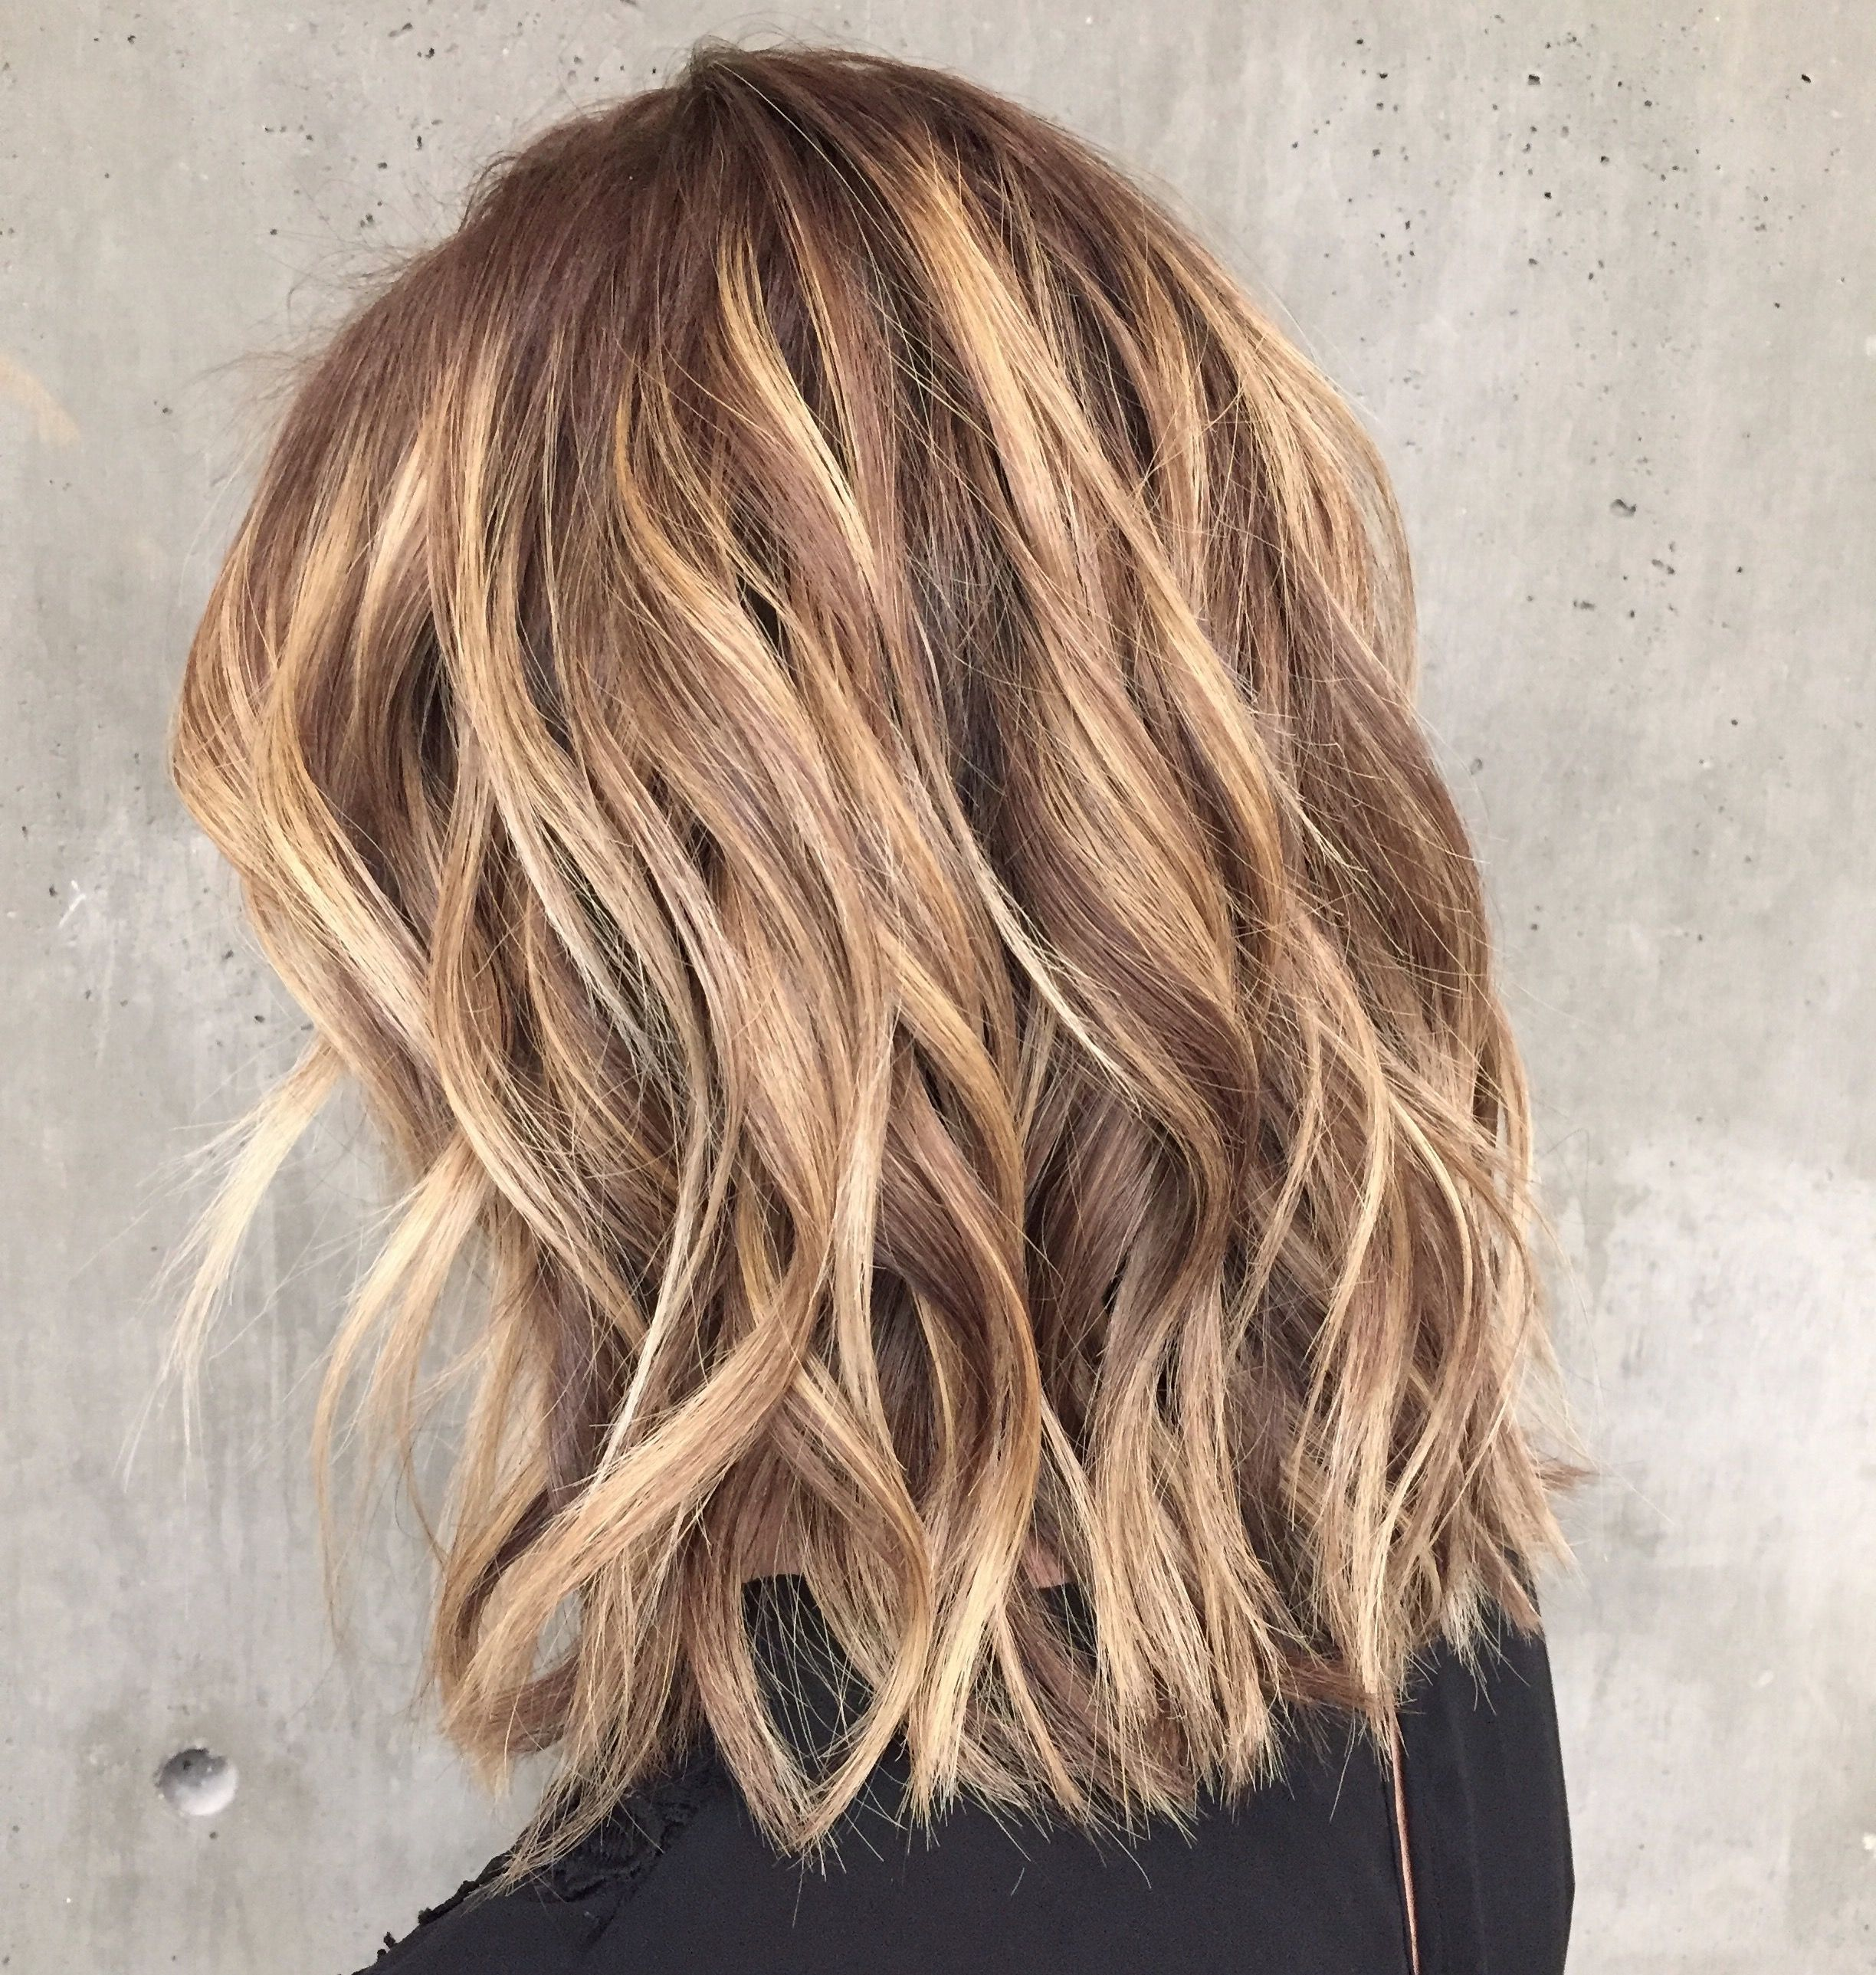 20 Honey Balayage Pictures That Really Inspire To Try Highlights Brown Hair Balayage Honey Balayage Ombre Hair Blonde